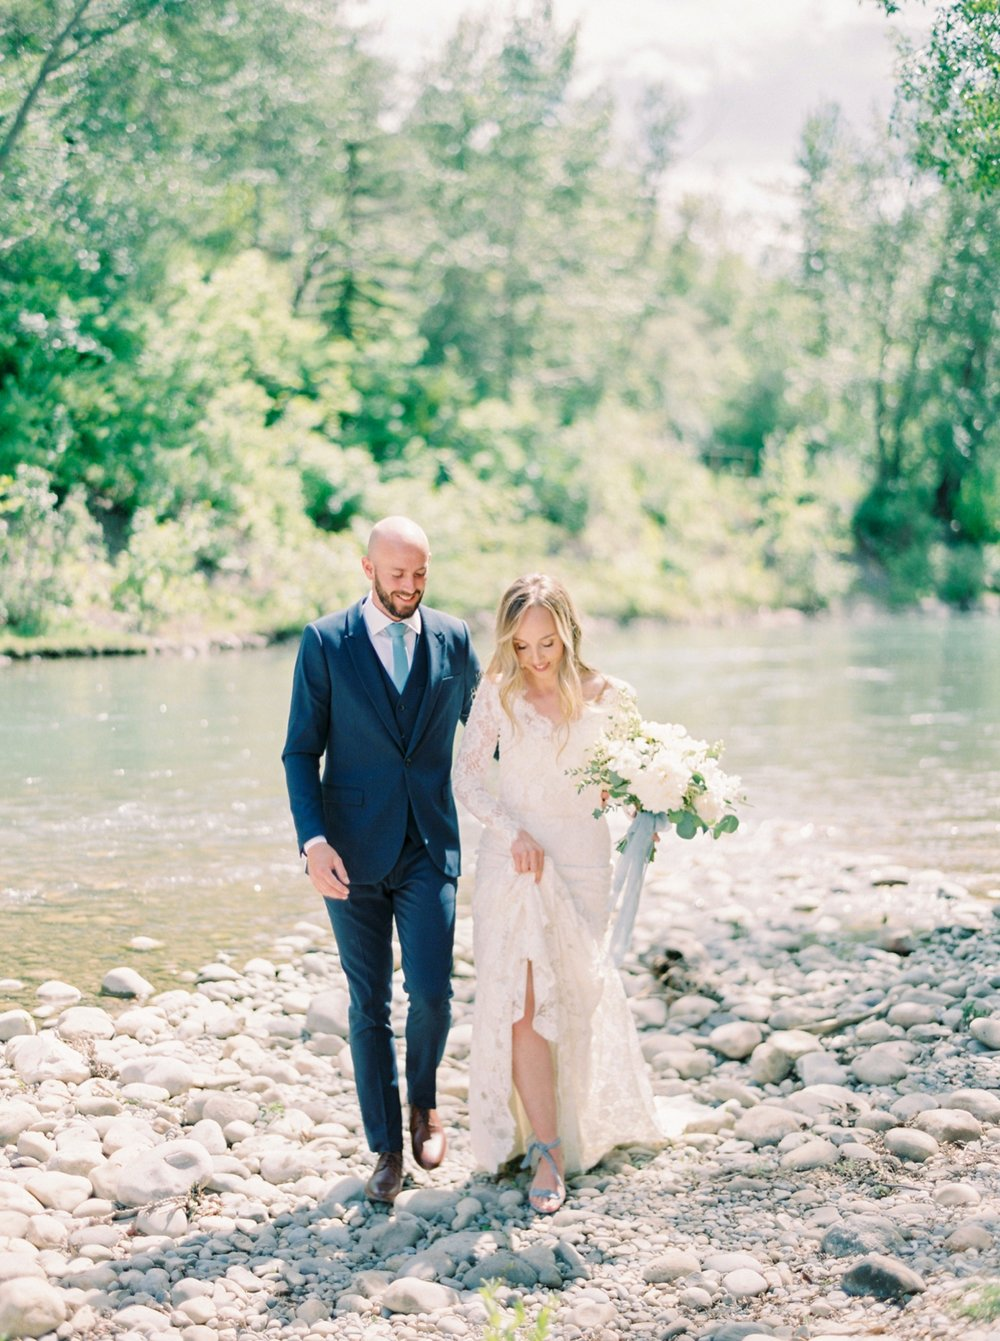 Calgary wedding photographers | The Gathered Farm Wedding | Justine milton fine art film photographer | bride and groom portraits white bridal bouquet white peonies